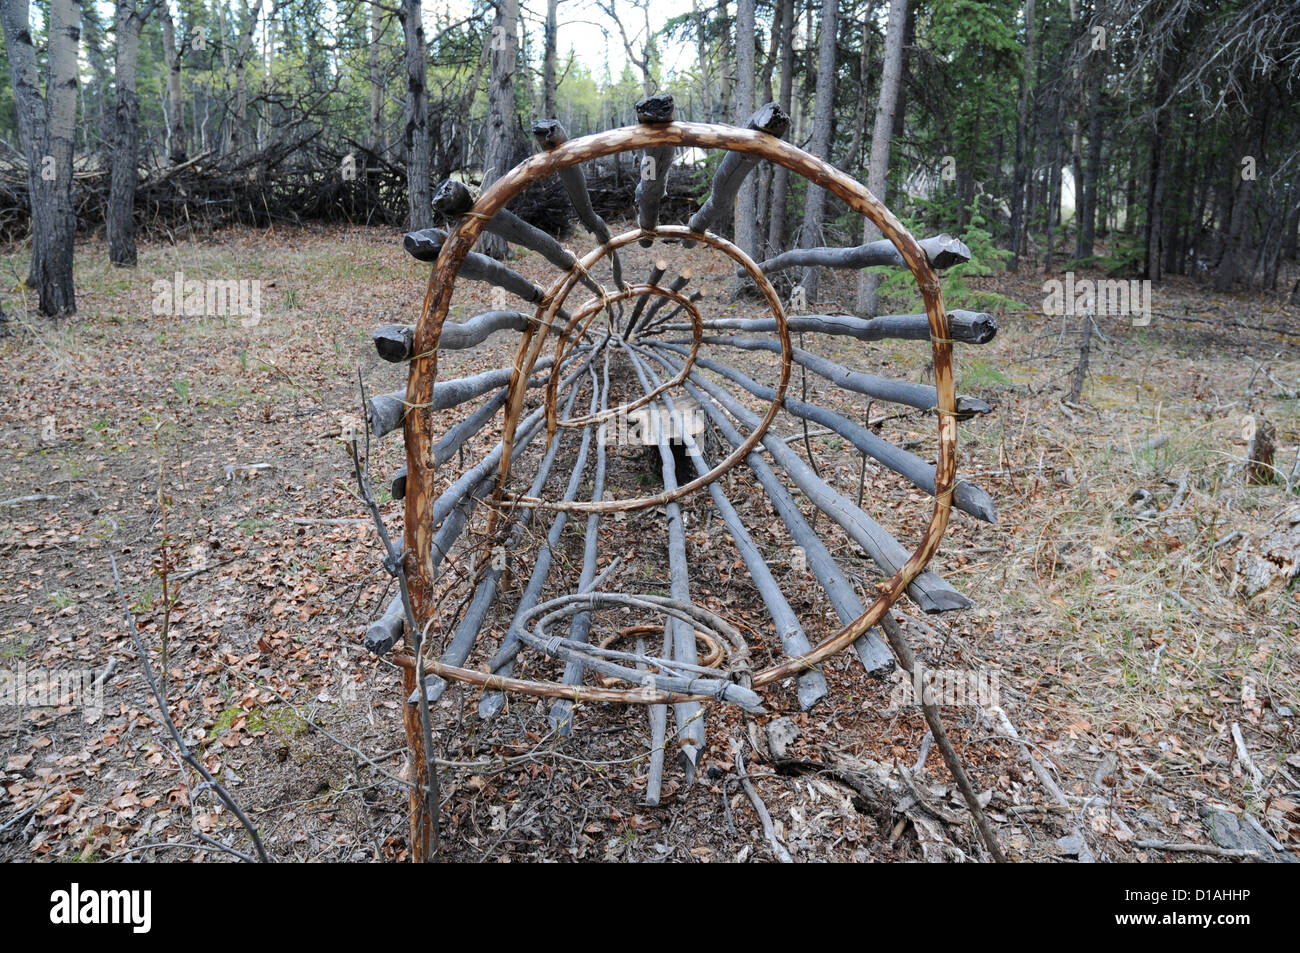 Looking through the mouth of a traditional Native American salmon fish trap, displayed in the town of Champagne, Stock Photo